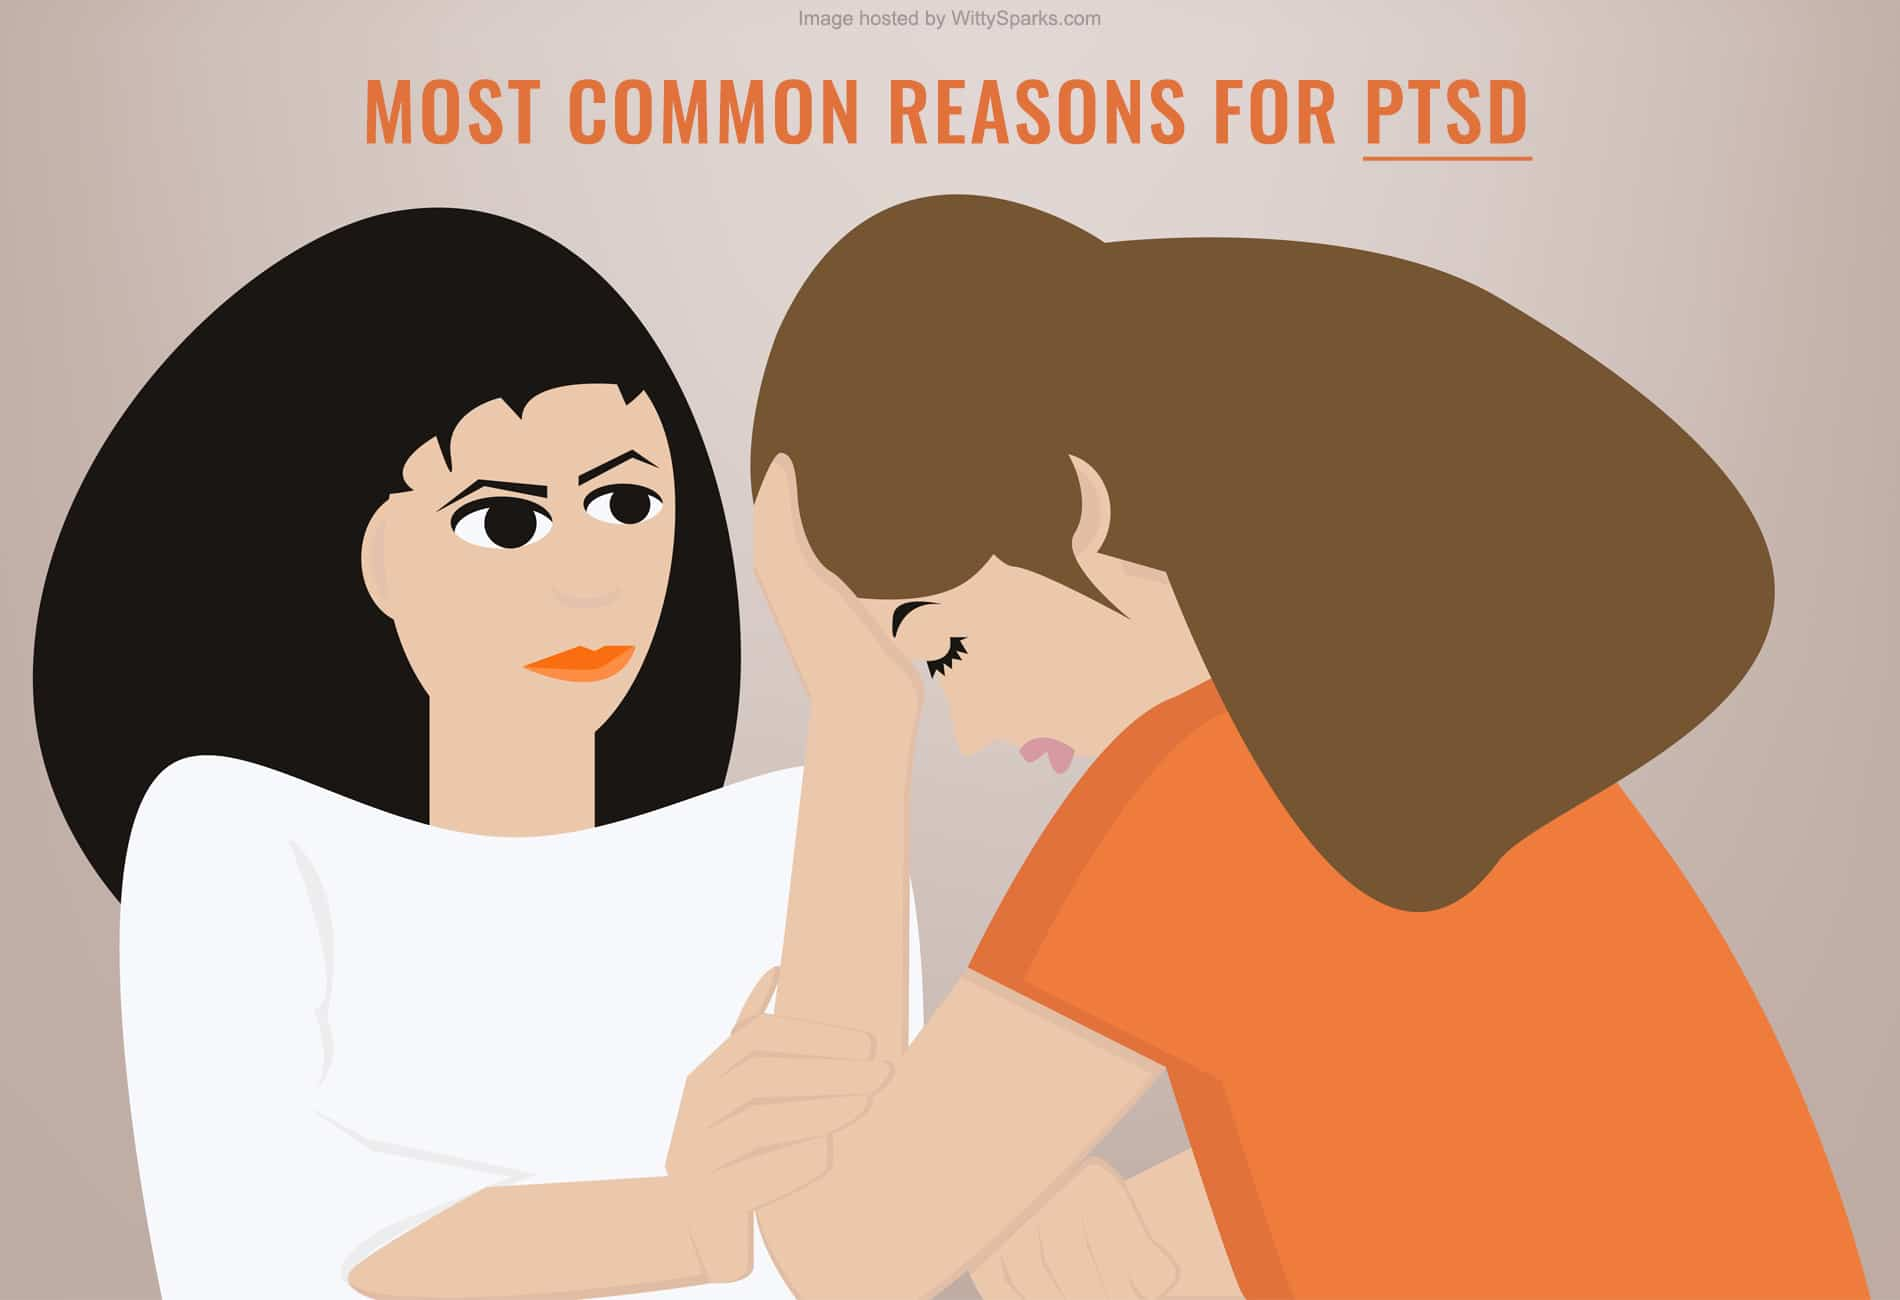 Common reasons for Post-traumatic stress disorder